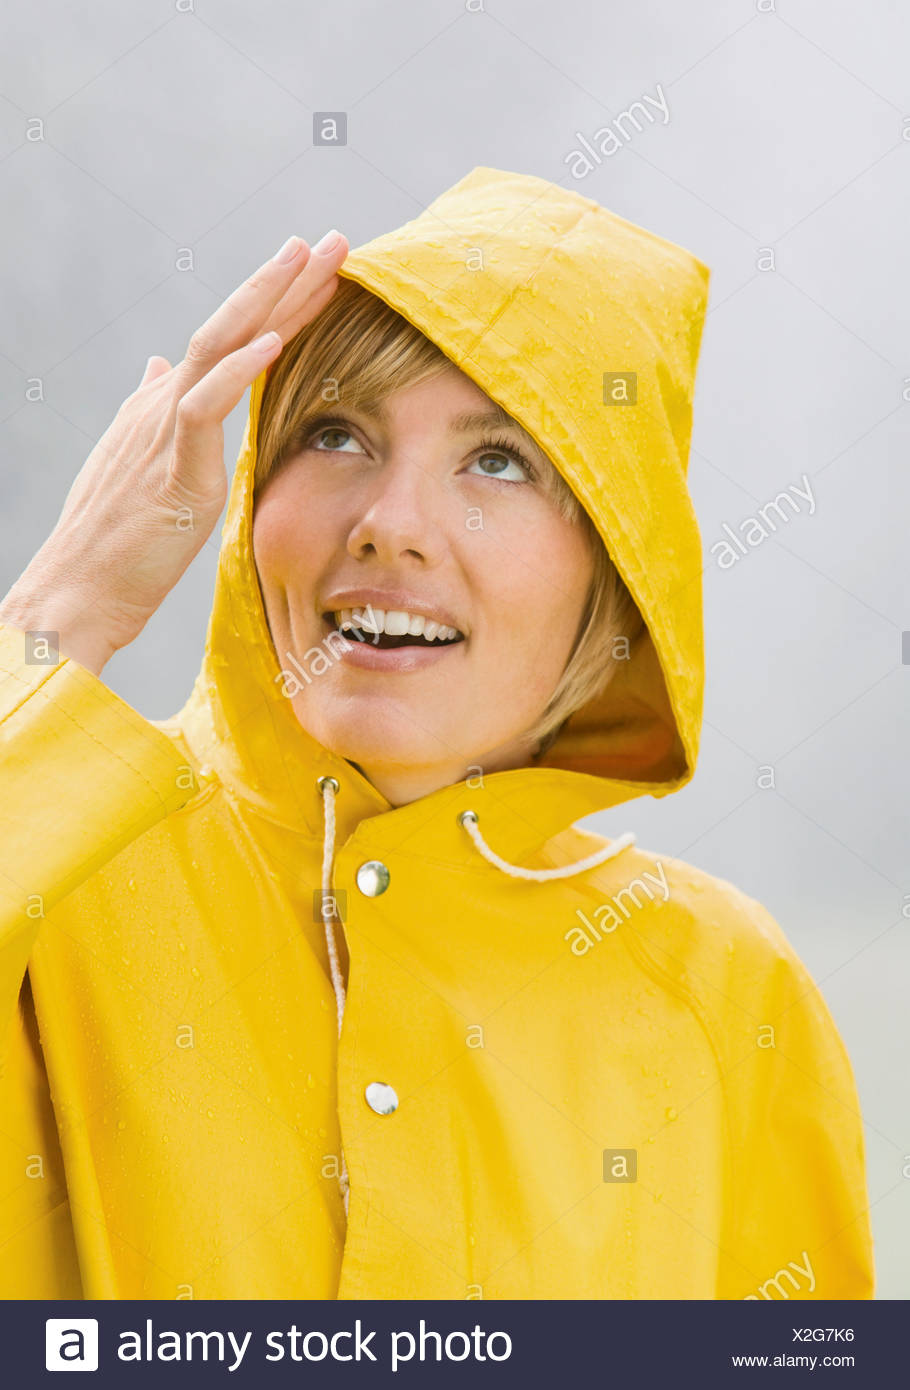 And Manteau Looking Banque Femme Pluie Smiling D De Jaune En Up axxnfq0p